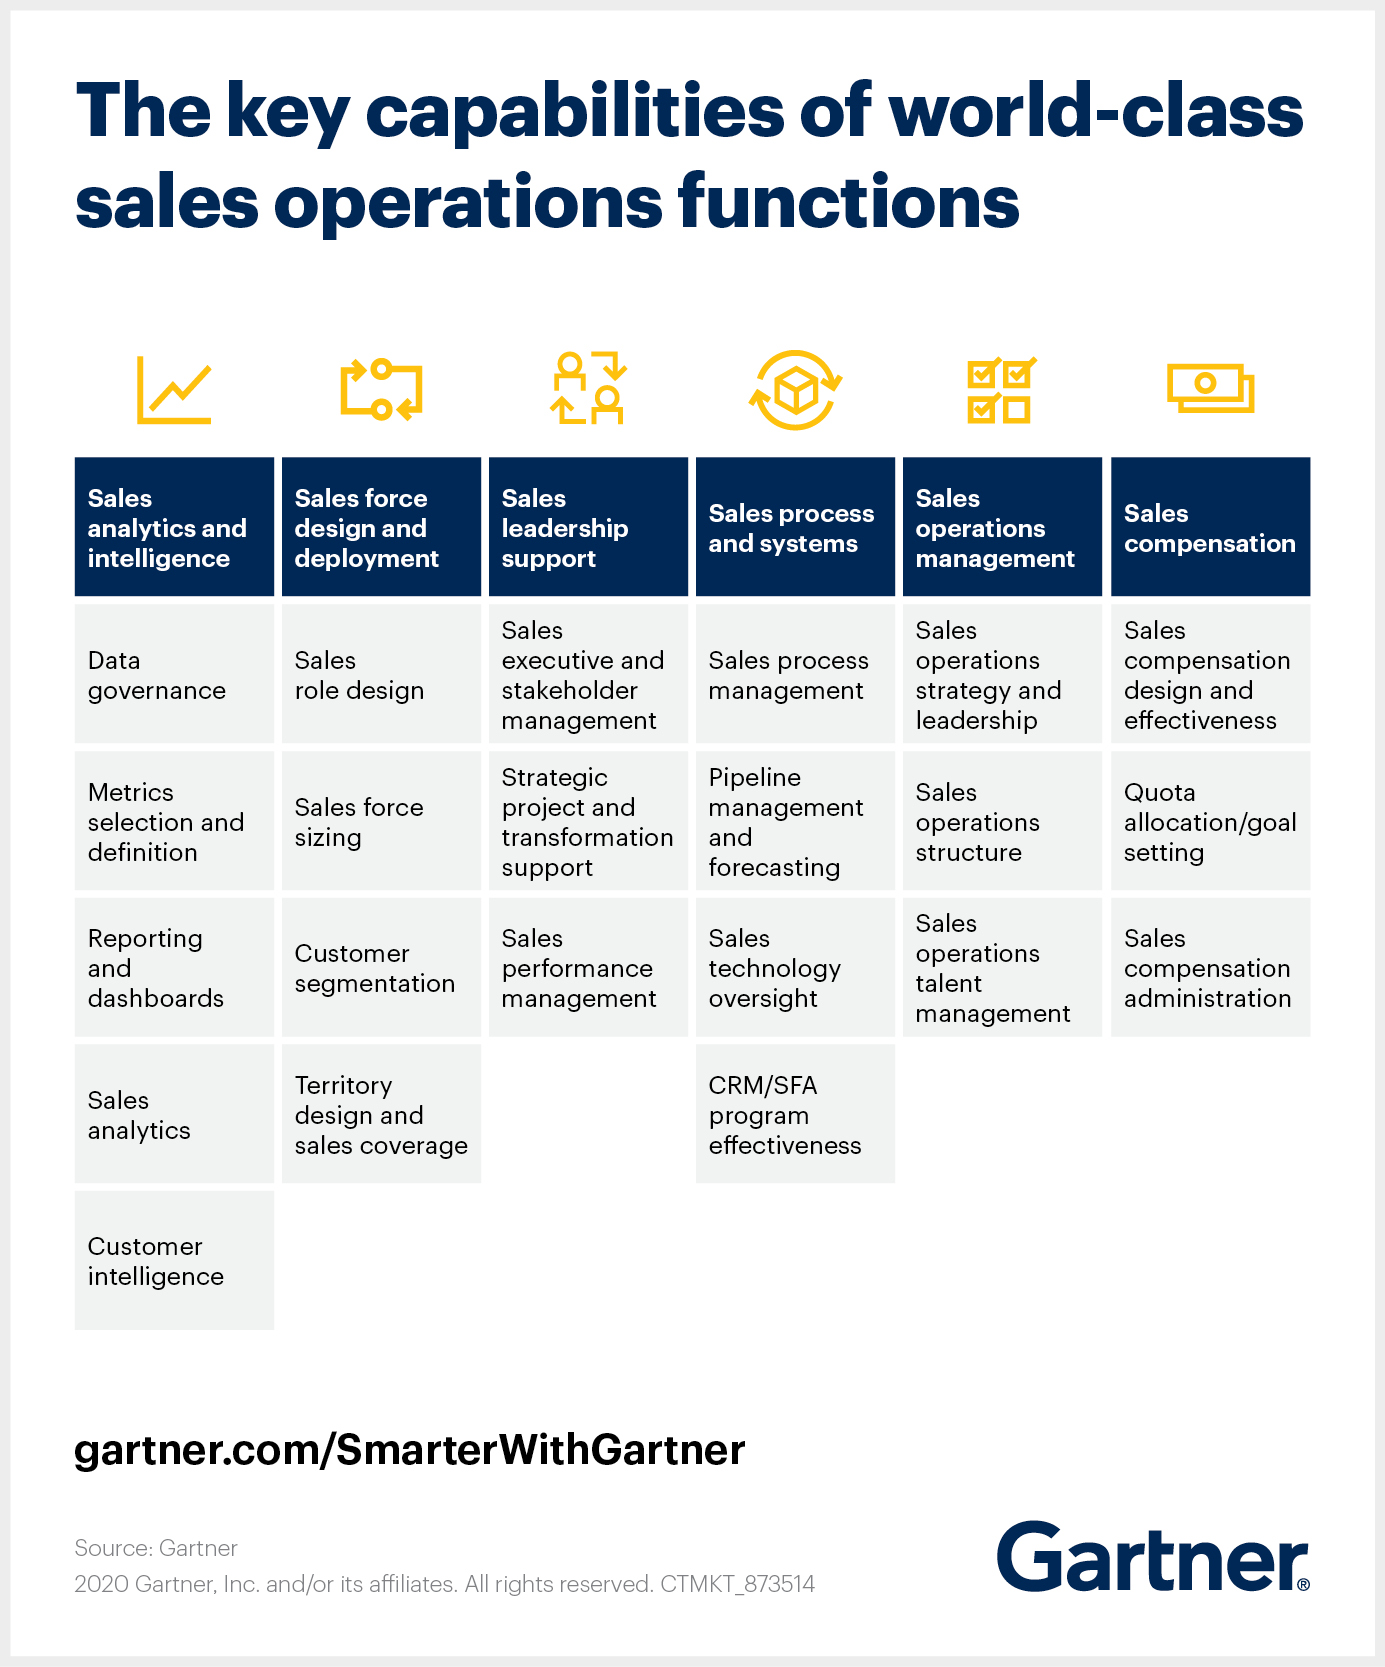 Gartner shares the key capabilities of a world-class sales operations function.